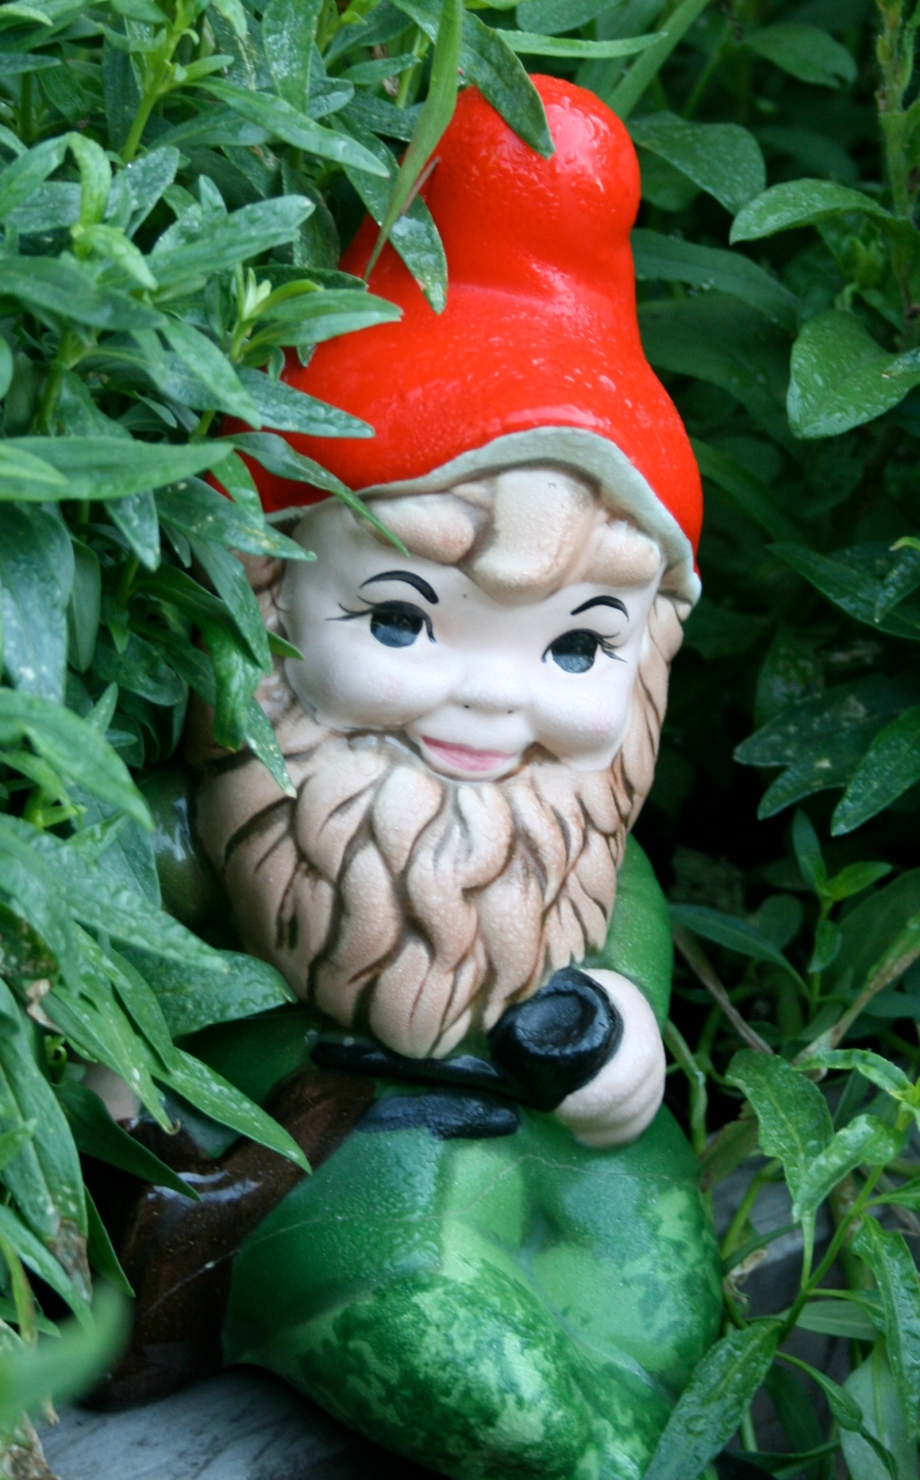 This Old Gnome